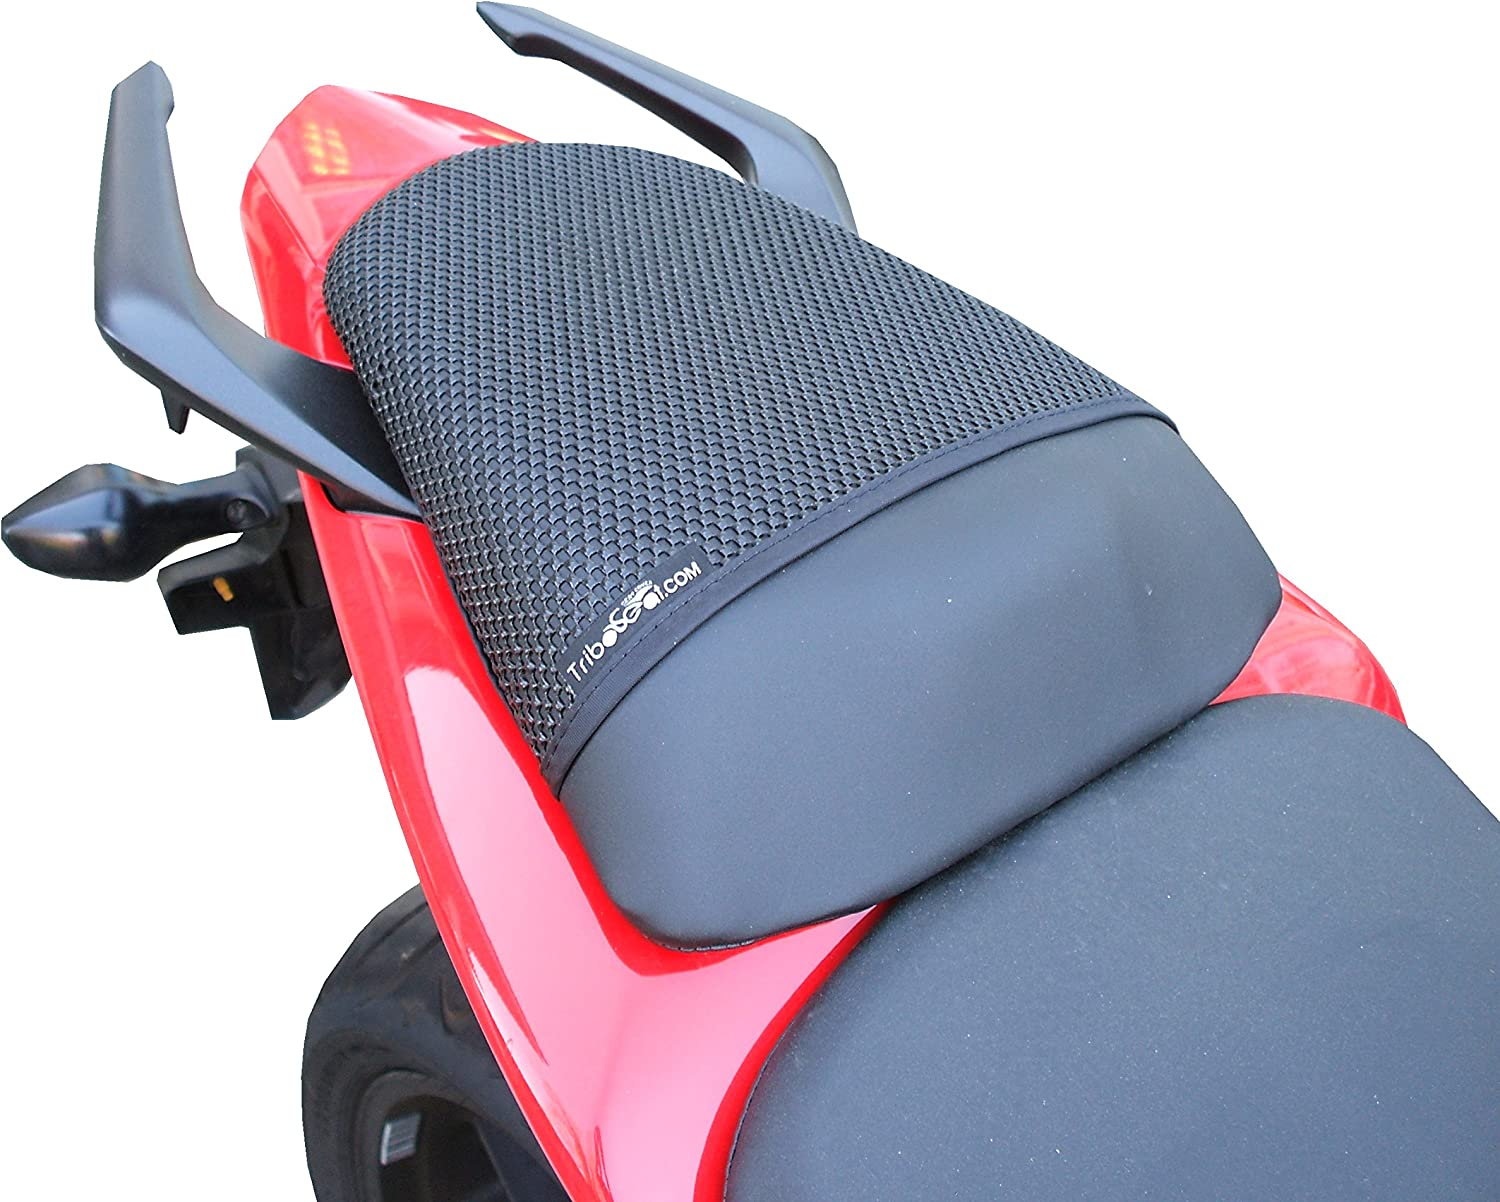 TRIBOSEAT Anti Slip Motorcycle Passenger Seat Cover Black Accessory Compatible With Honda CB500F 2016-2019